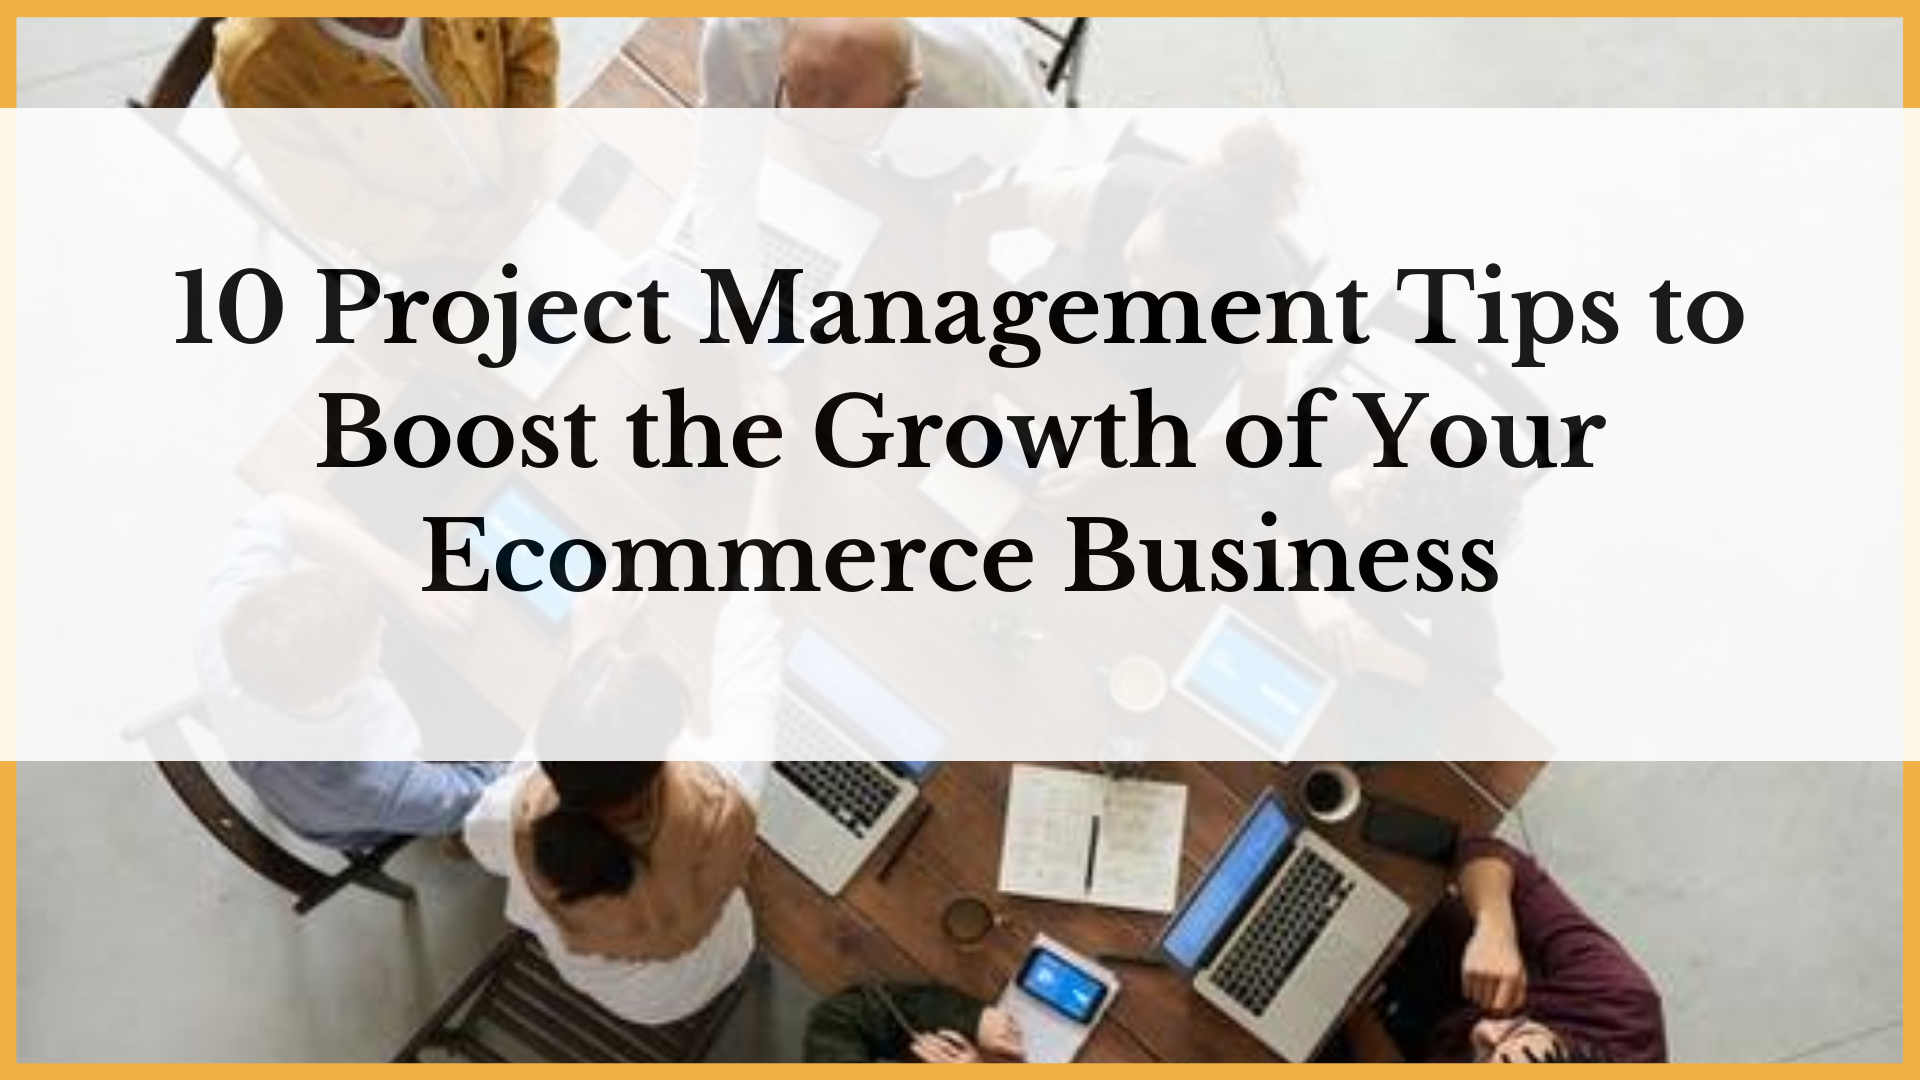 10 Project Management Tips to Help Grow Your eCommerce Business